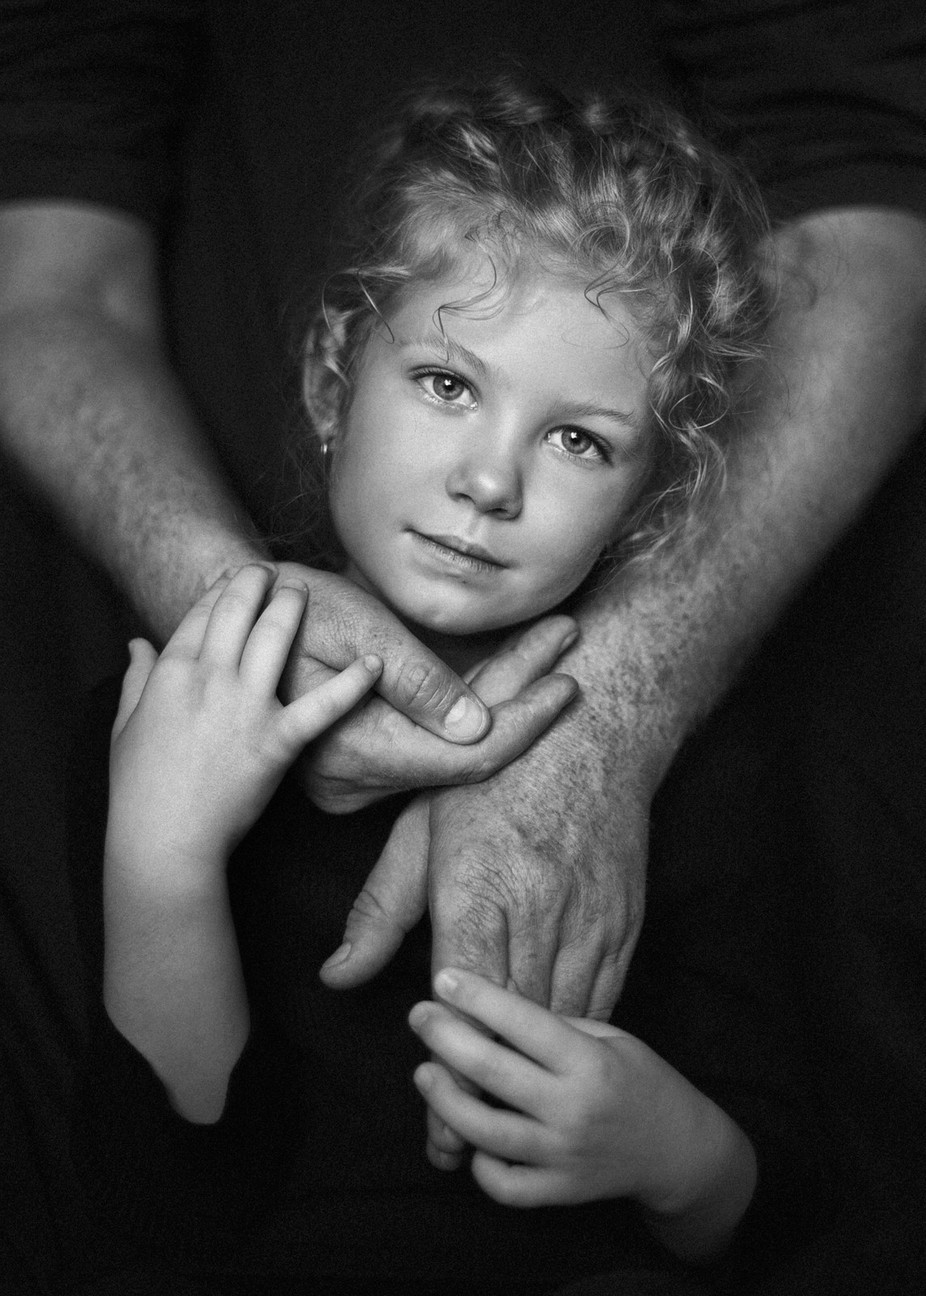 Father's hands by LisaAnfisa - We Love Our Dads Photo Contest